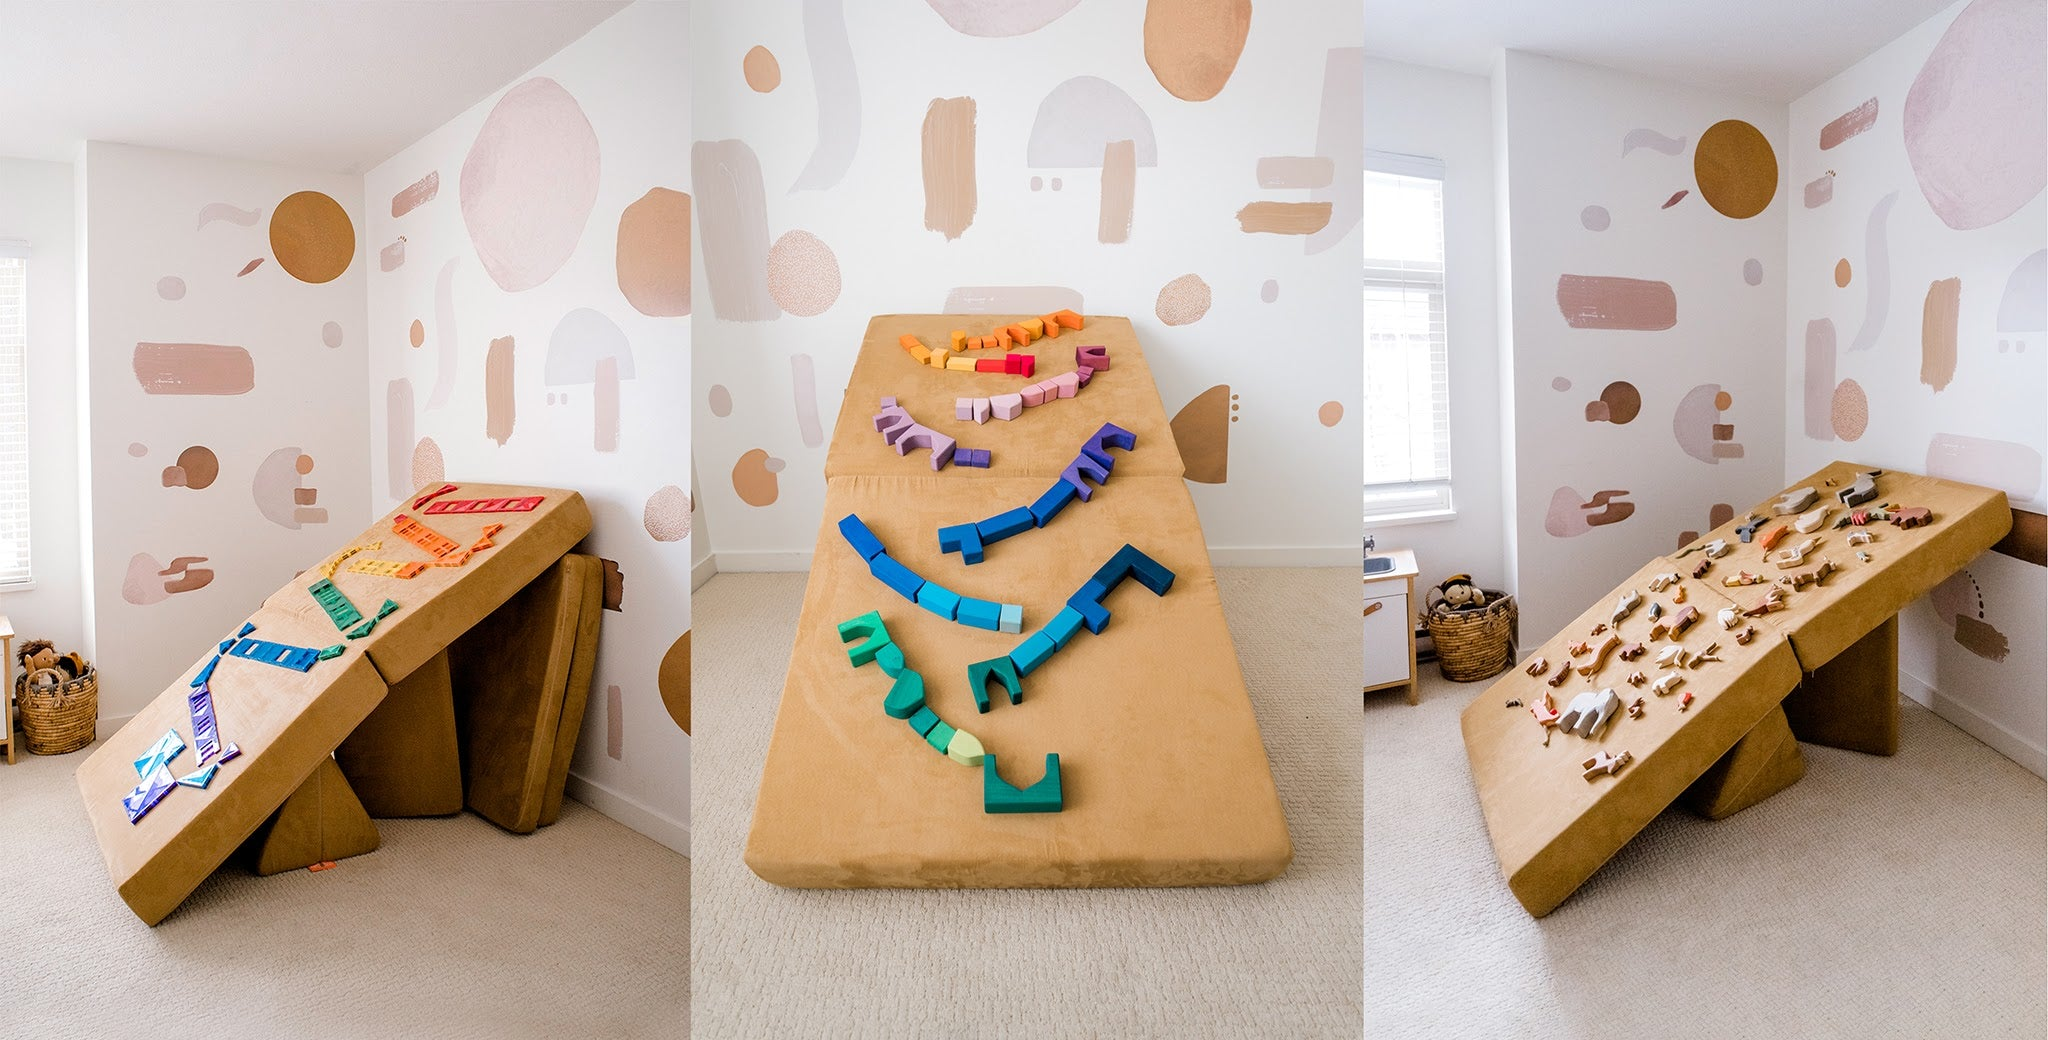 Full-size ball run options, with colorful wooden toys on a Sandcastle Nugget